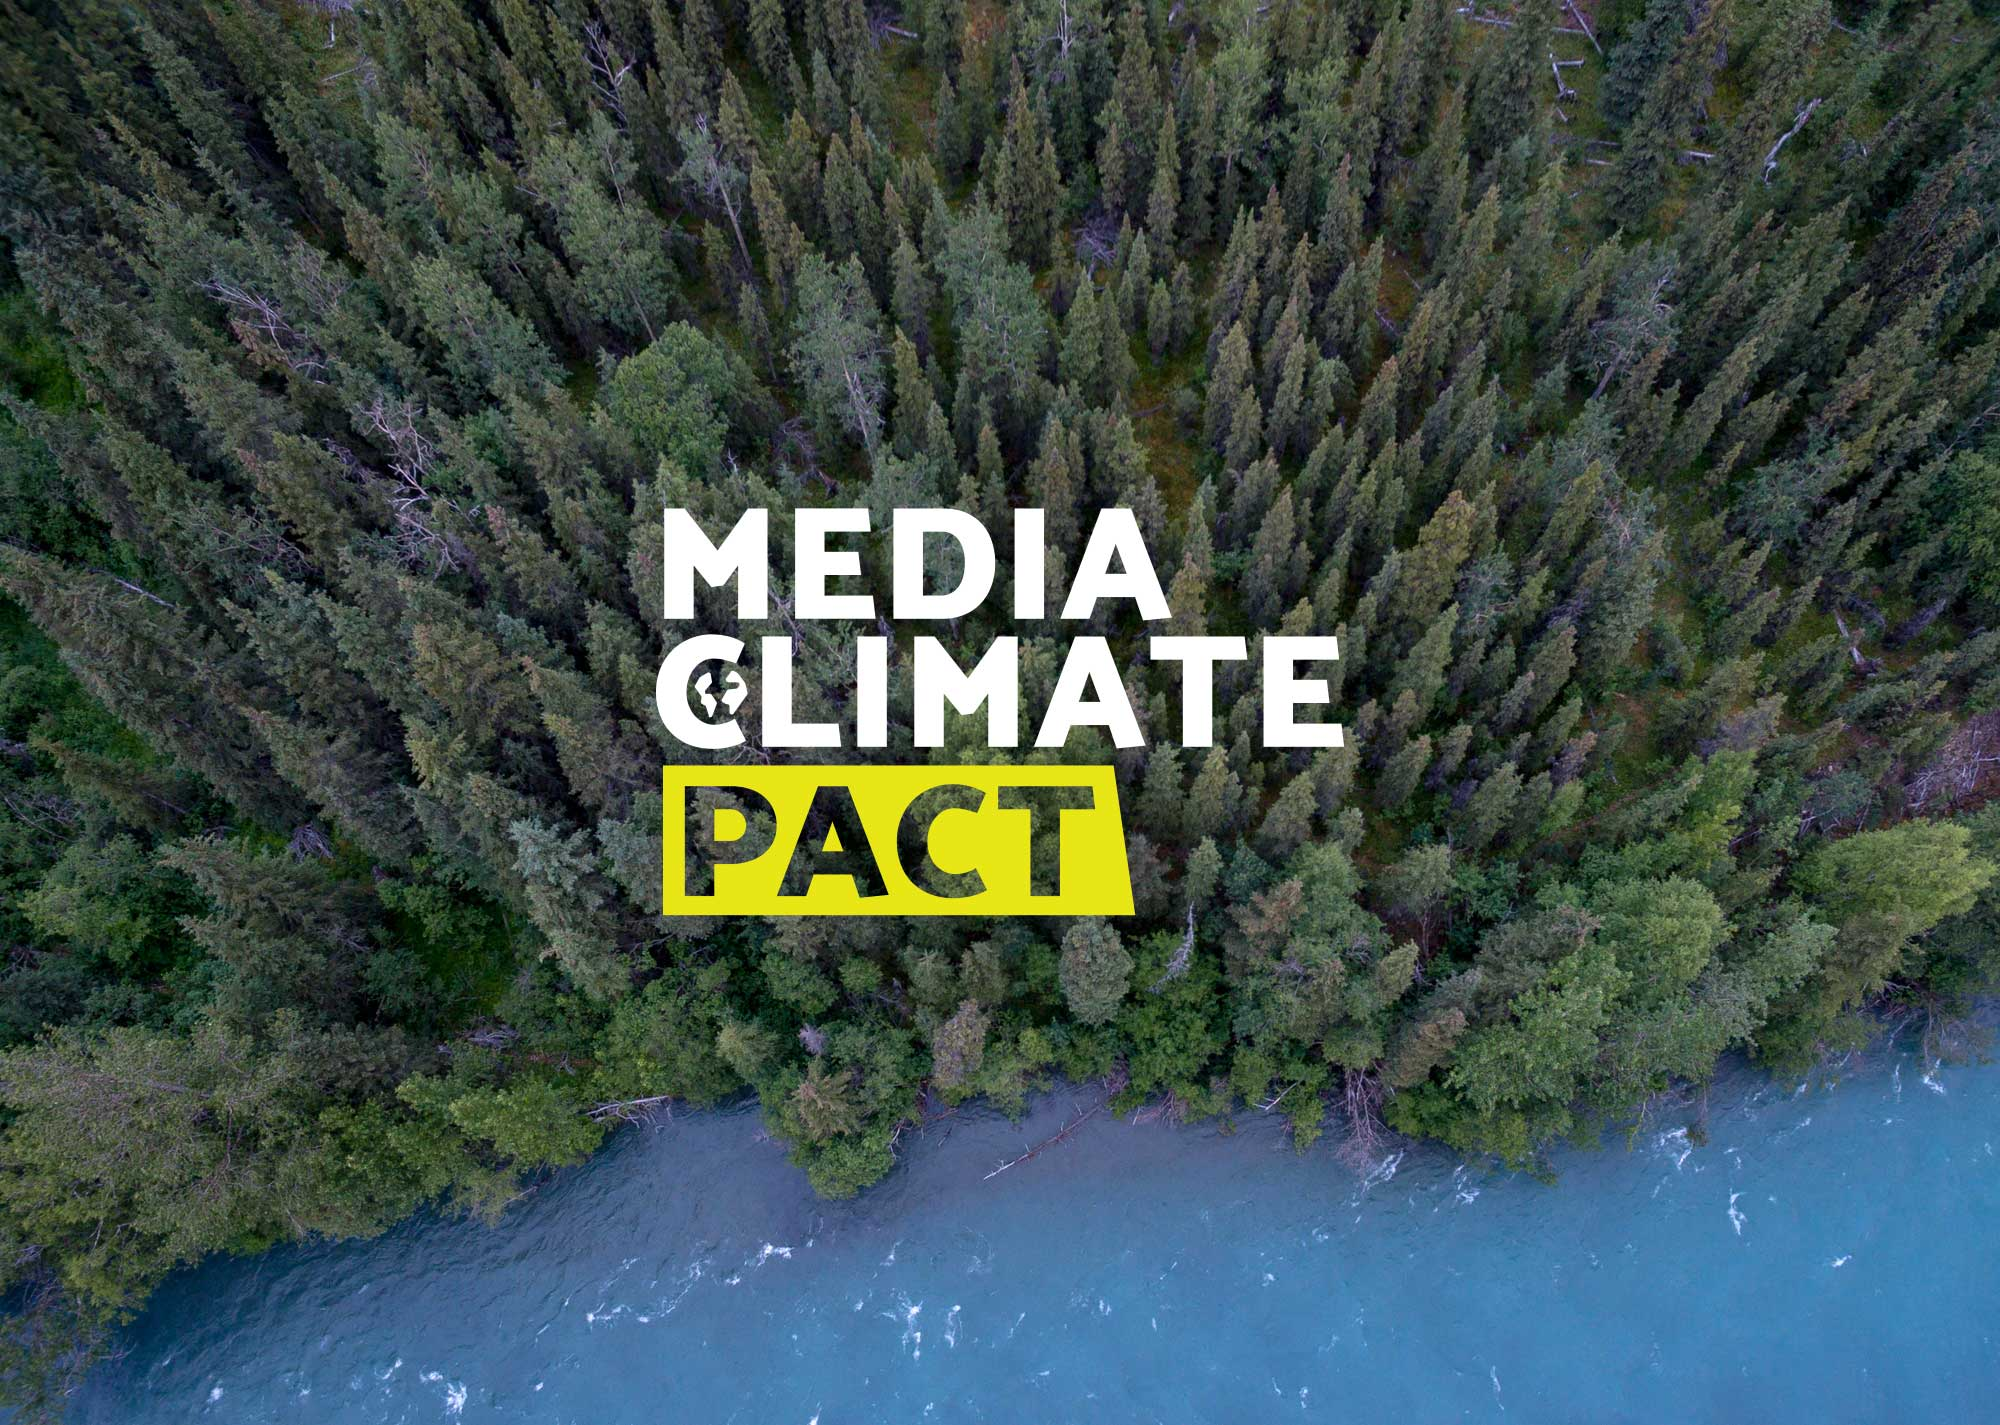 Media Climate Pact identity